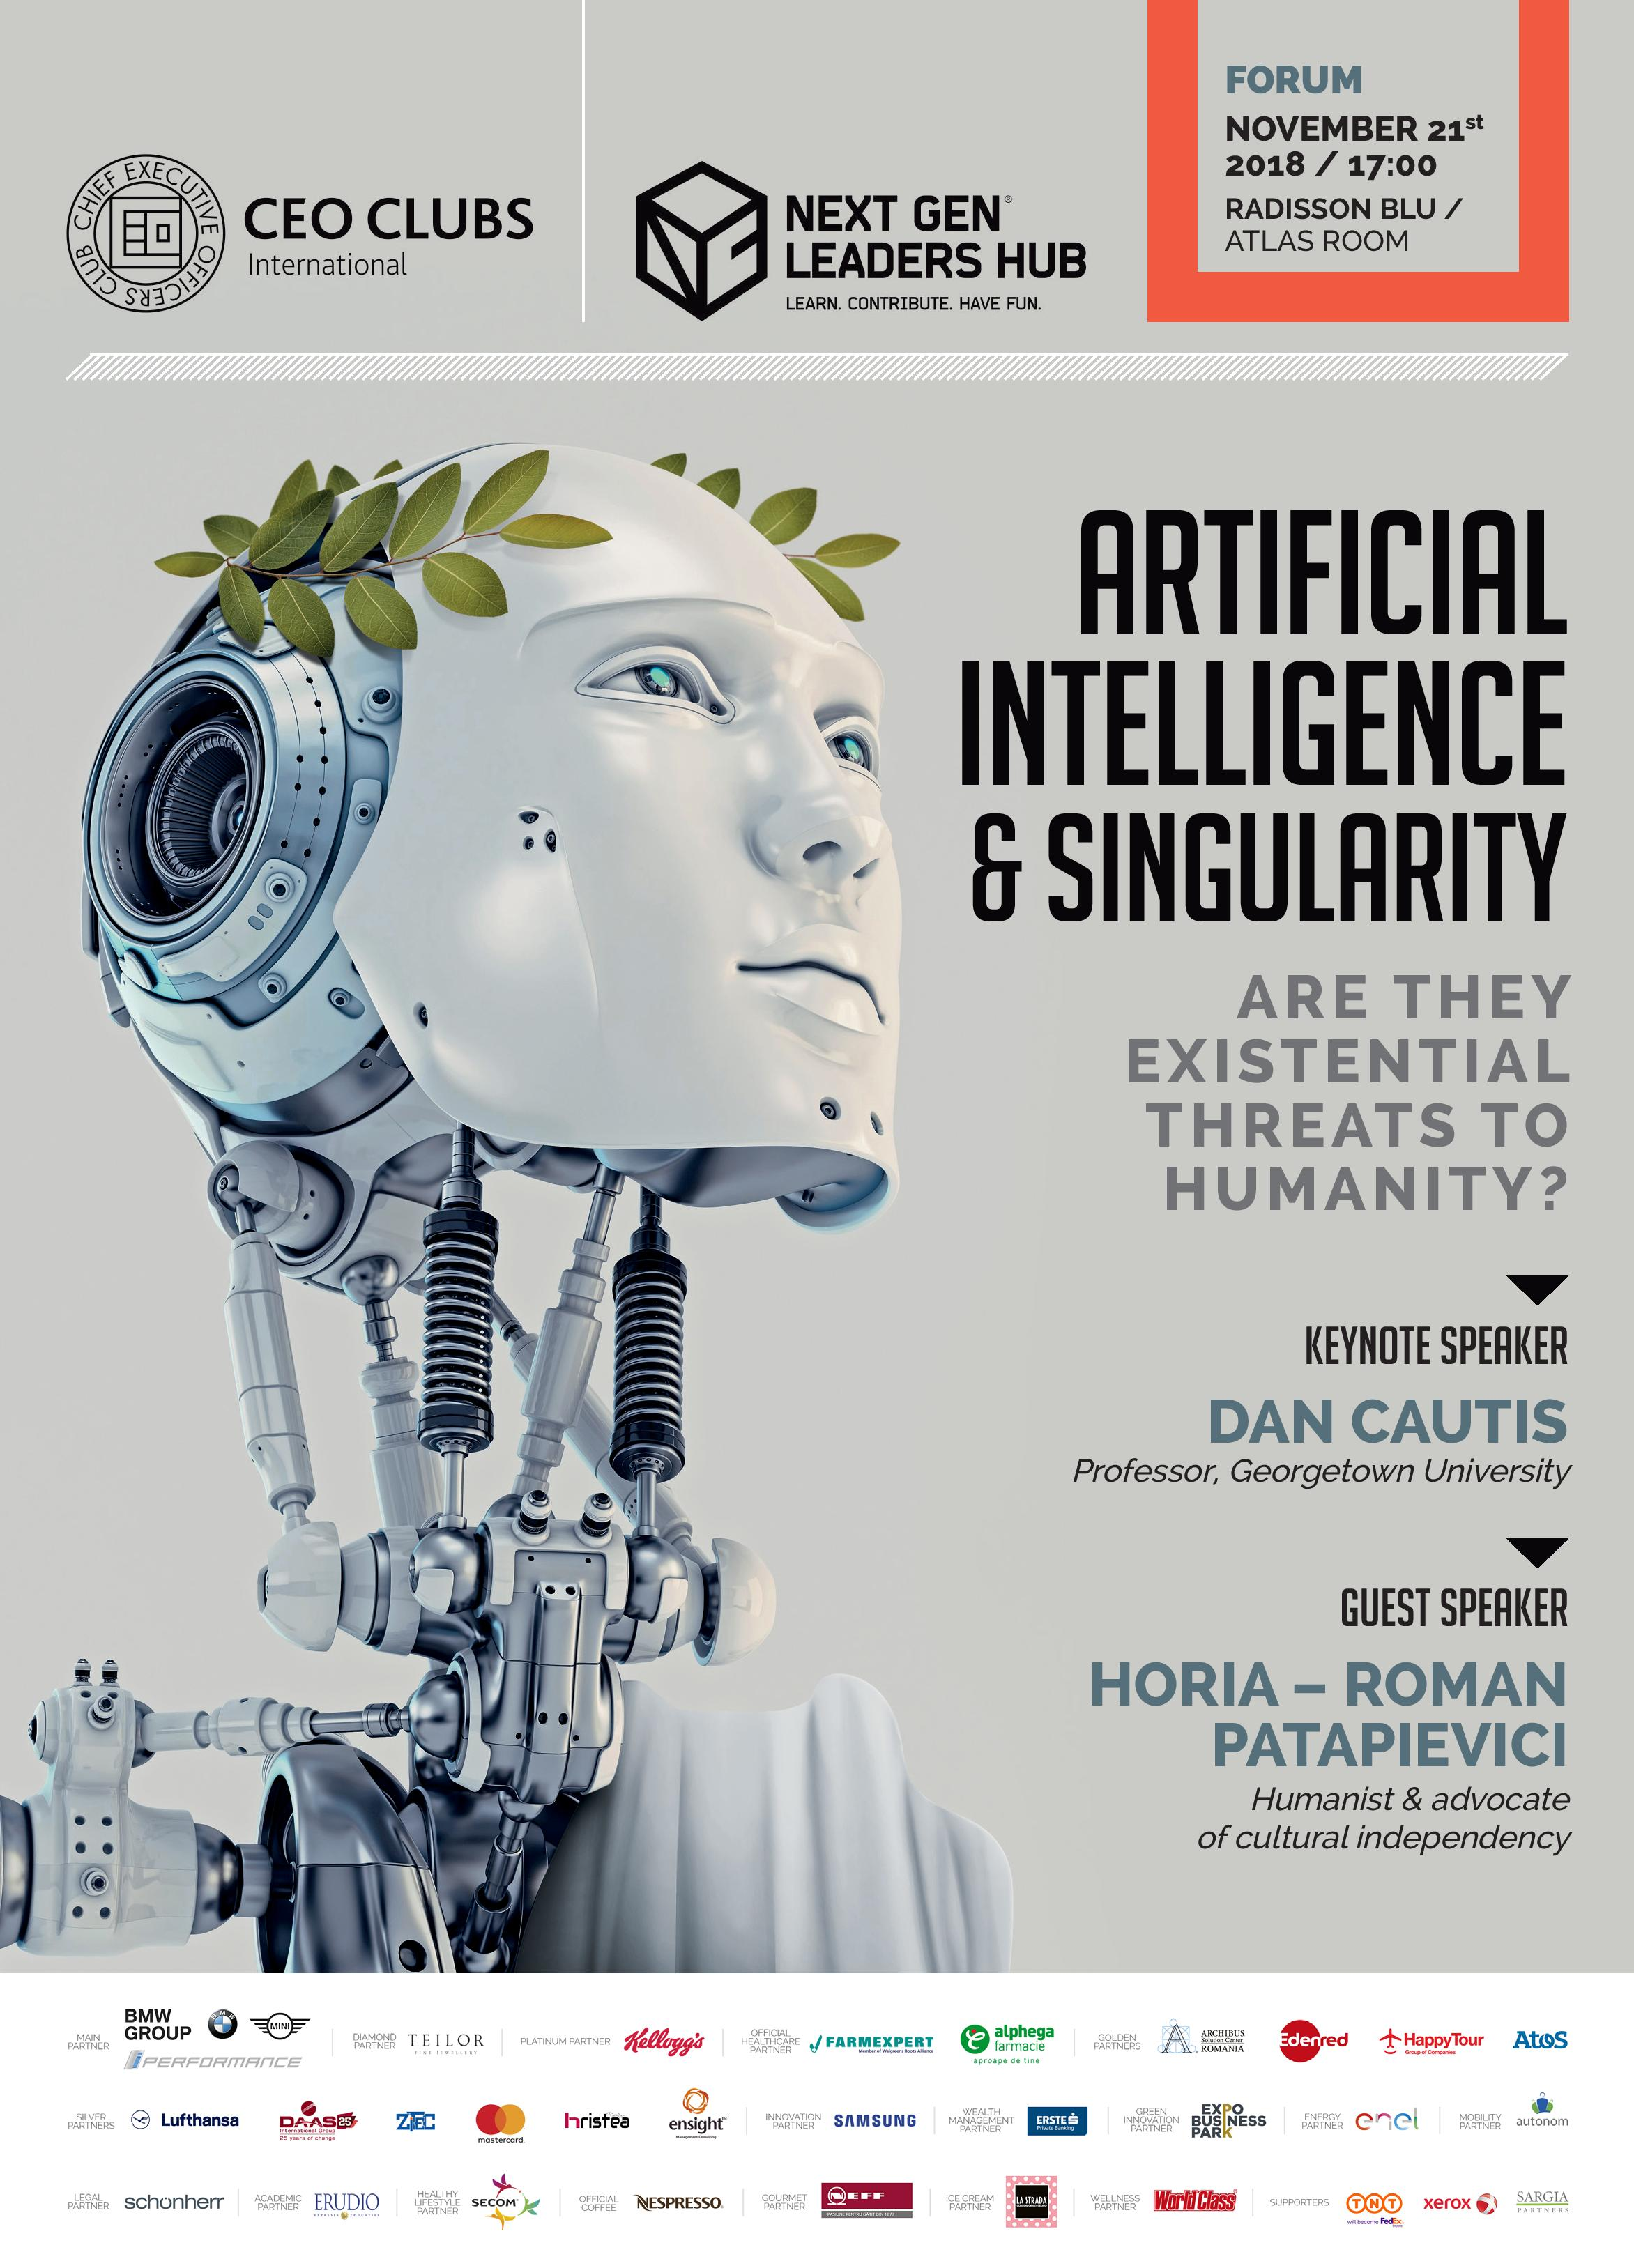 FULLY BOOKED: 14th Forum: Artificial Intelligence & Singularity